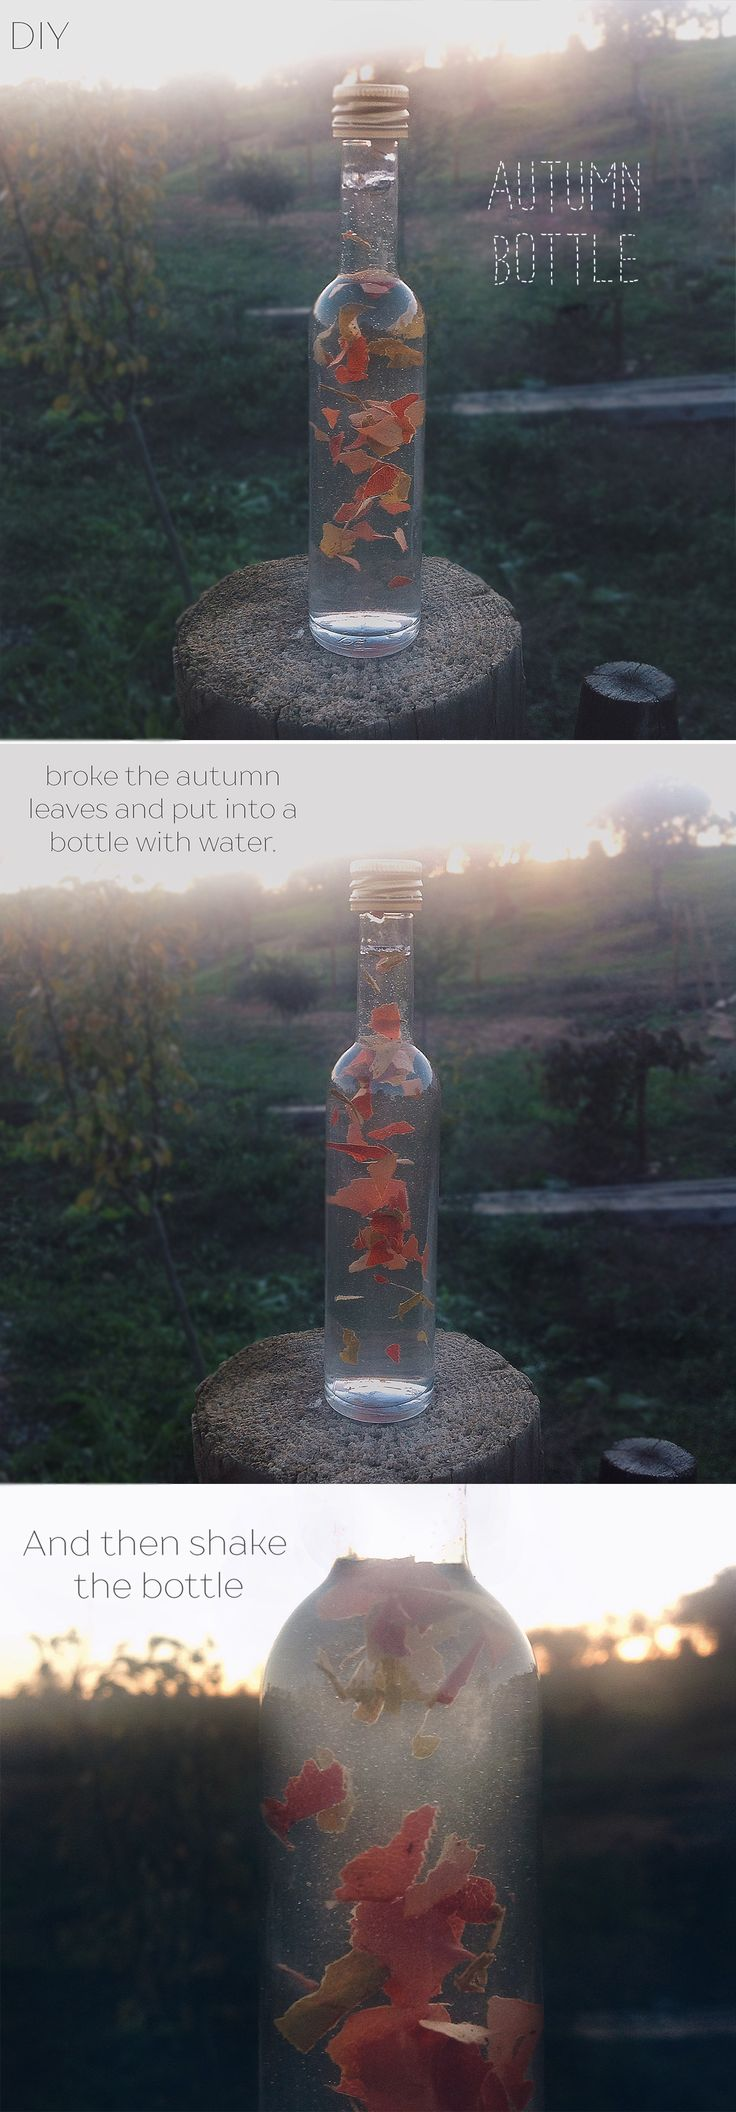 Catch autumn leaves, broke slowly and in the end put in a bottle of water, And Then shake the bottle. #decoration #diy #home